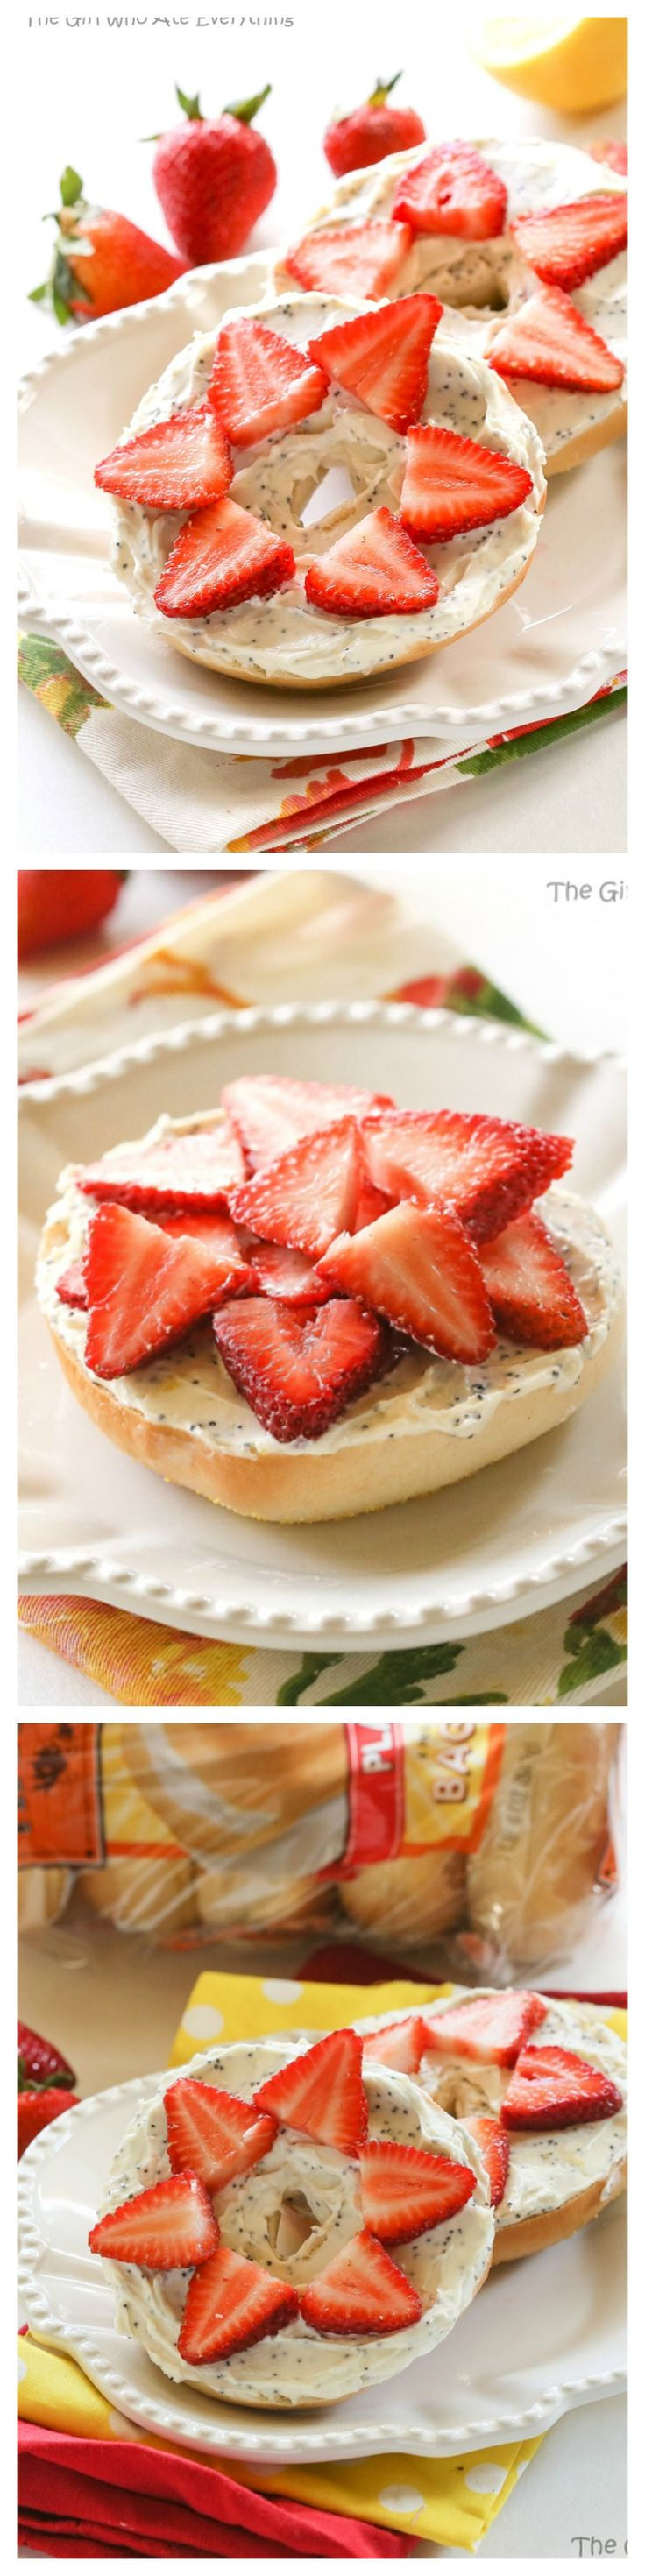 This Strawberry Lemon Poppy Seed Bagel is covered in cream cheese that has been flavored with lemon juice, almond, and poppy seeds. the-girl-who-ate-everything.com